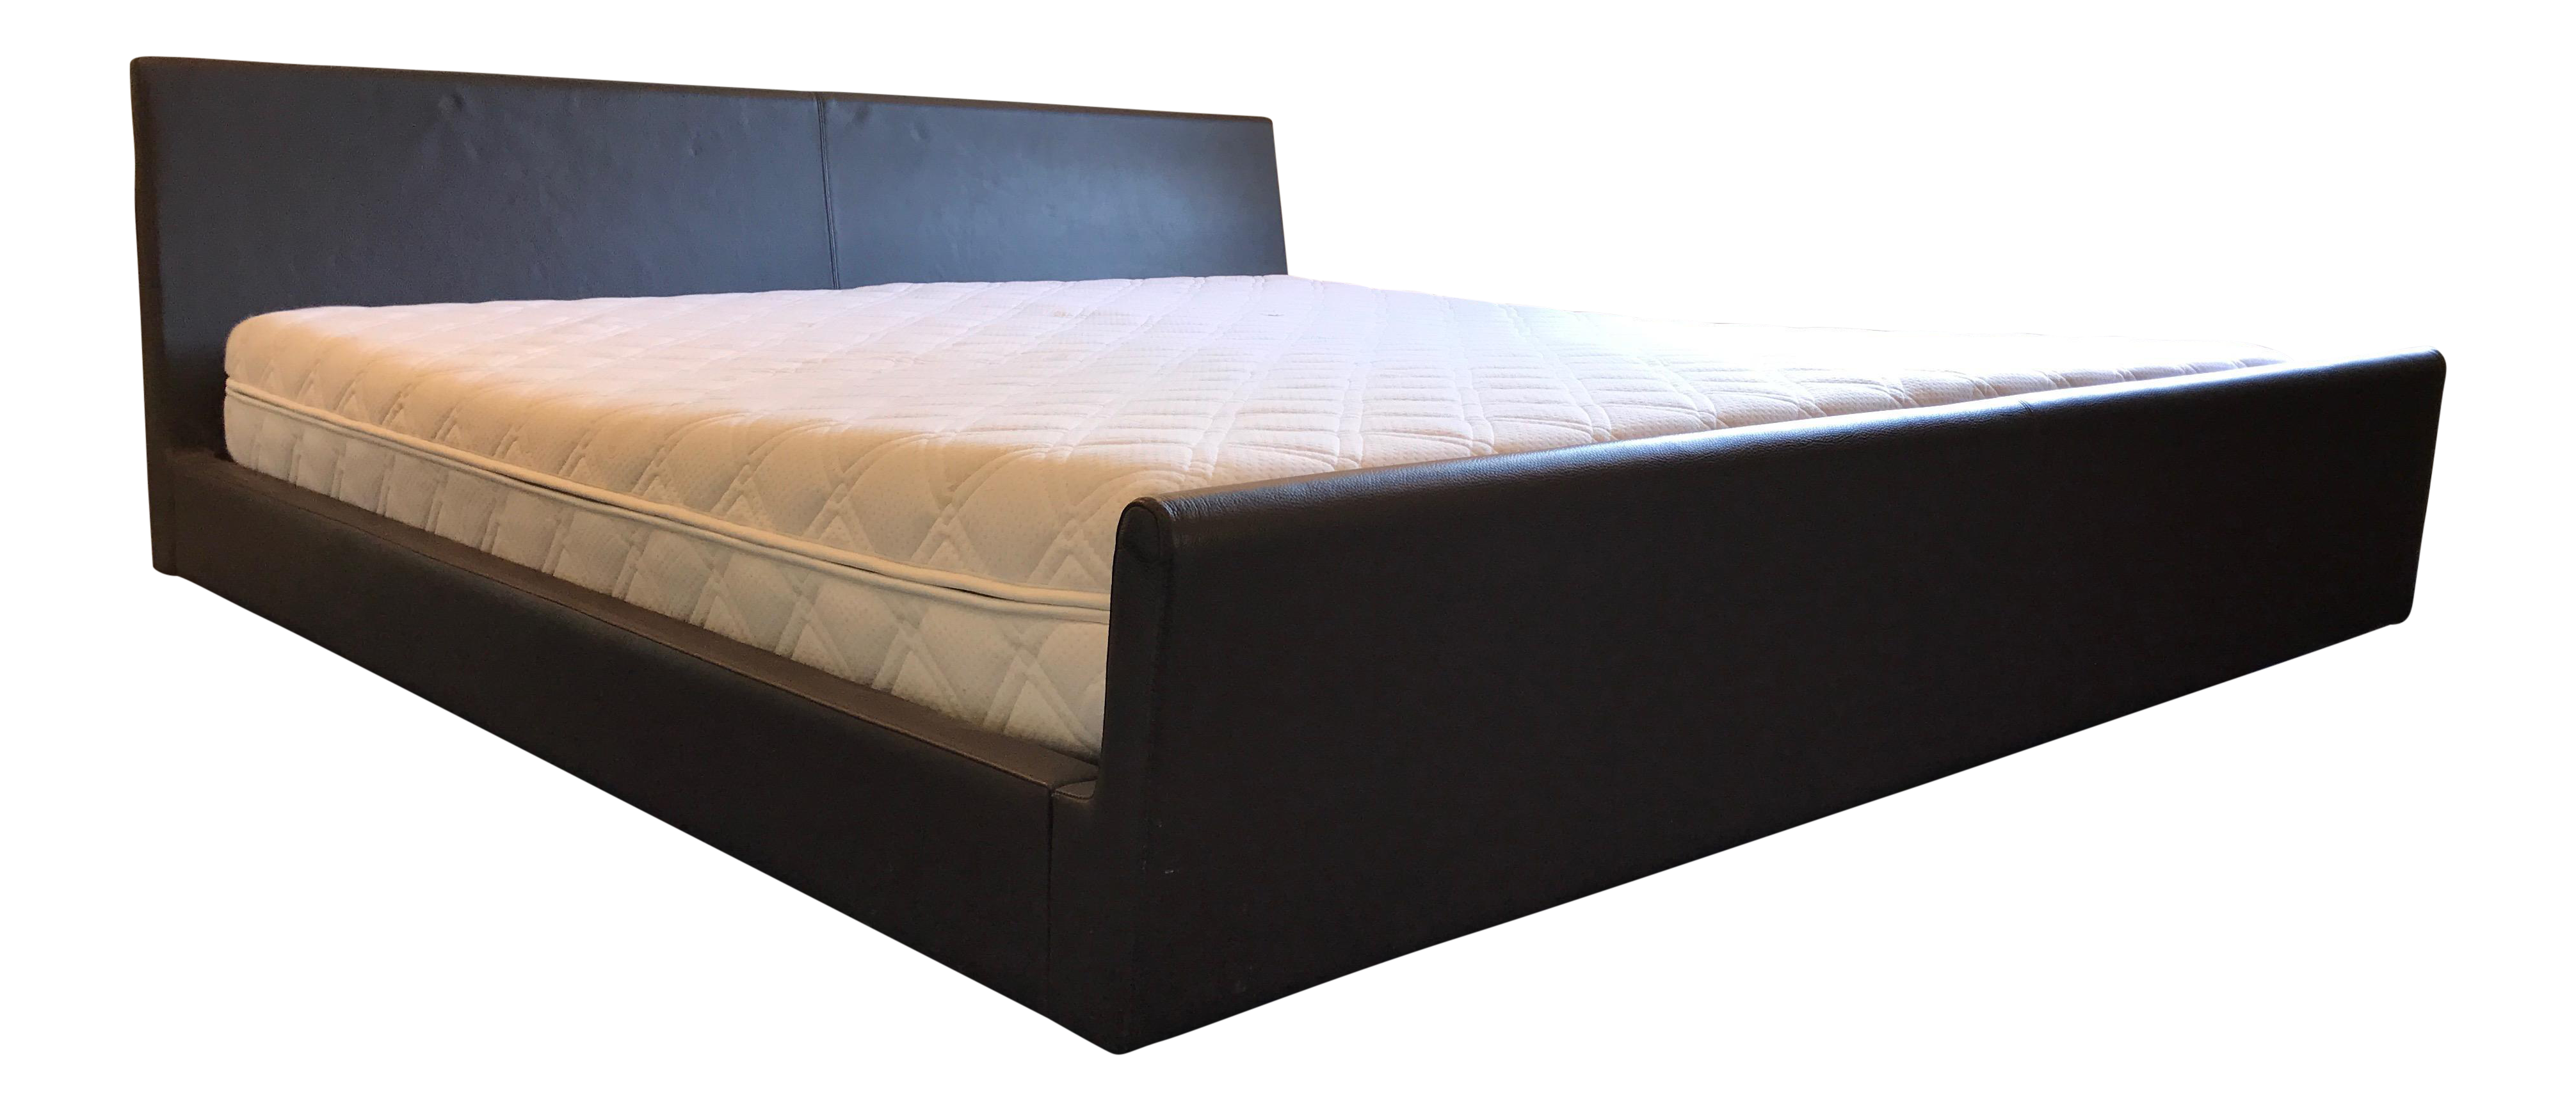 Loja Leather King Bed Final Markdown or It Goes to Goodwill